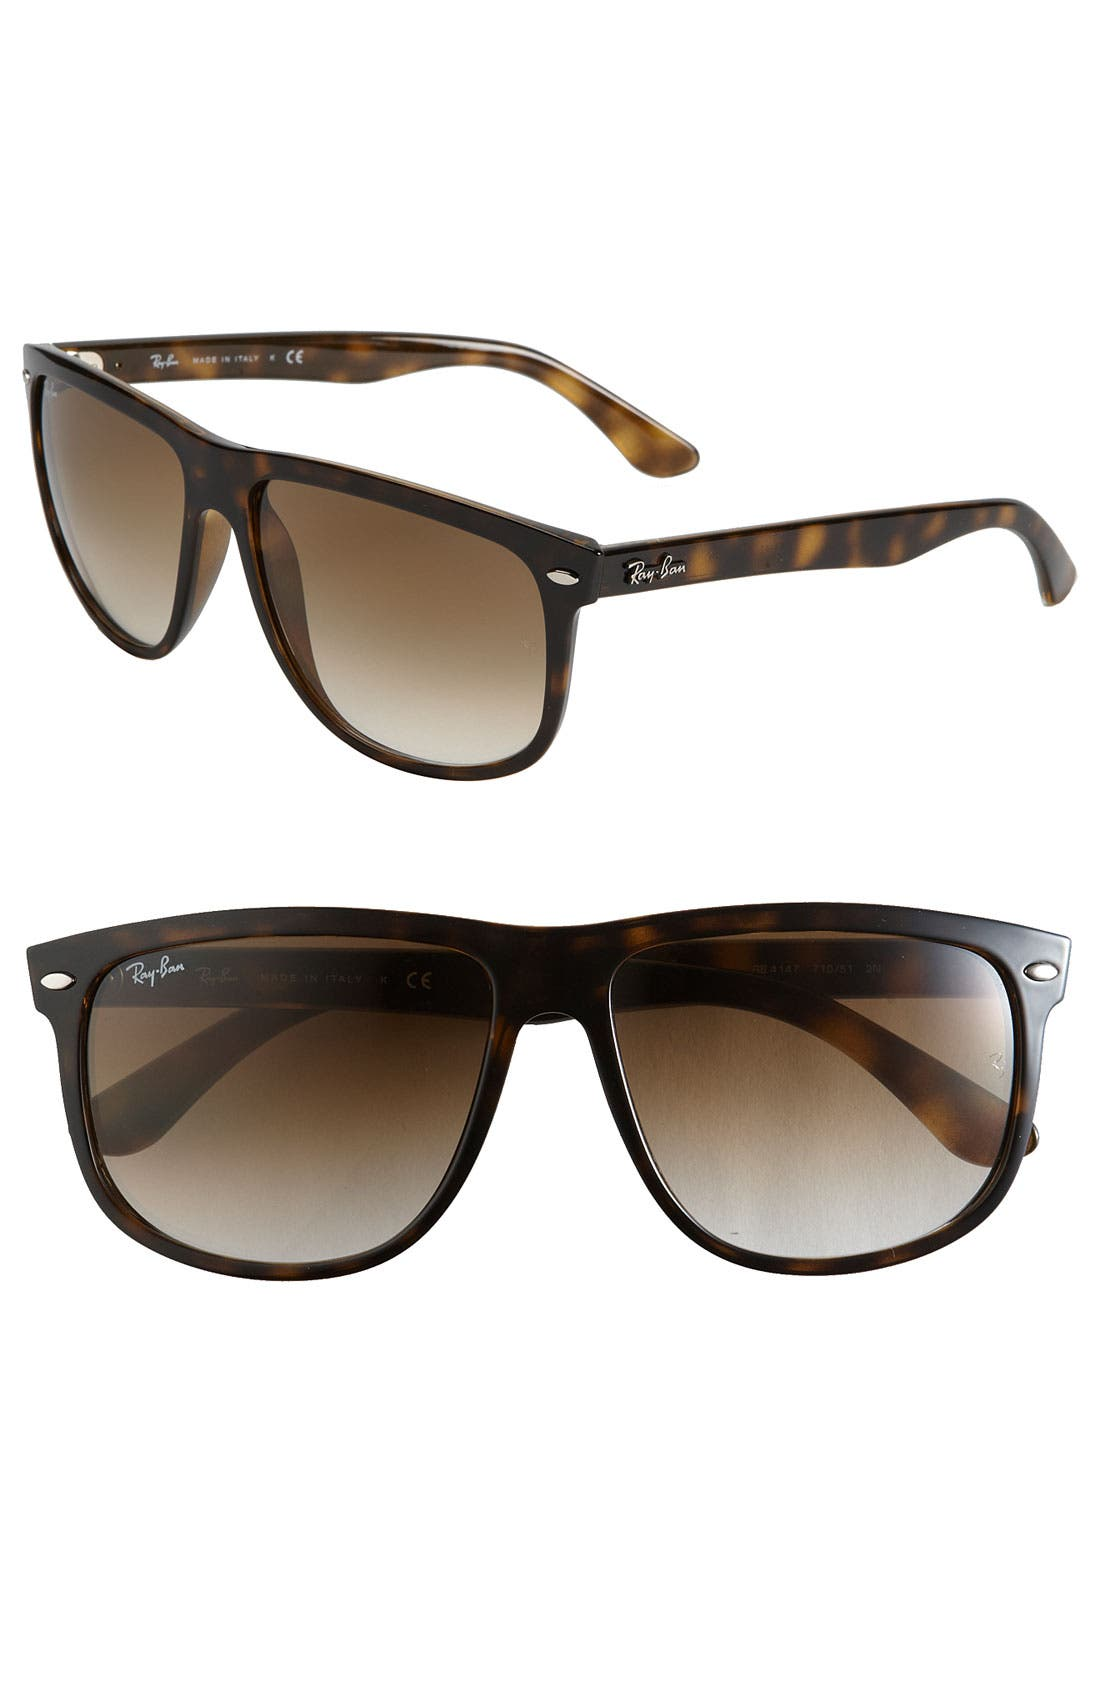 flat top sunglasses  Ray-Ban Boyfriend 60mm Flat Top Sunglasses